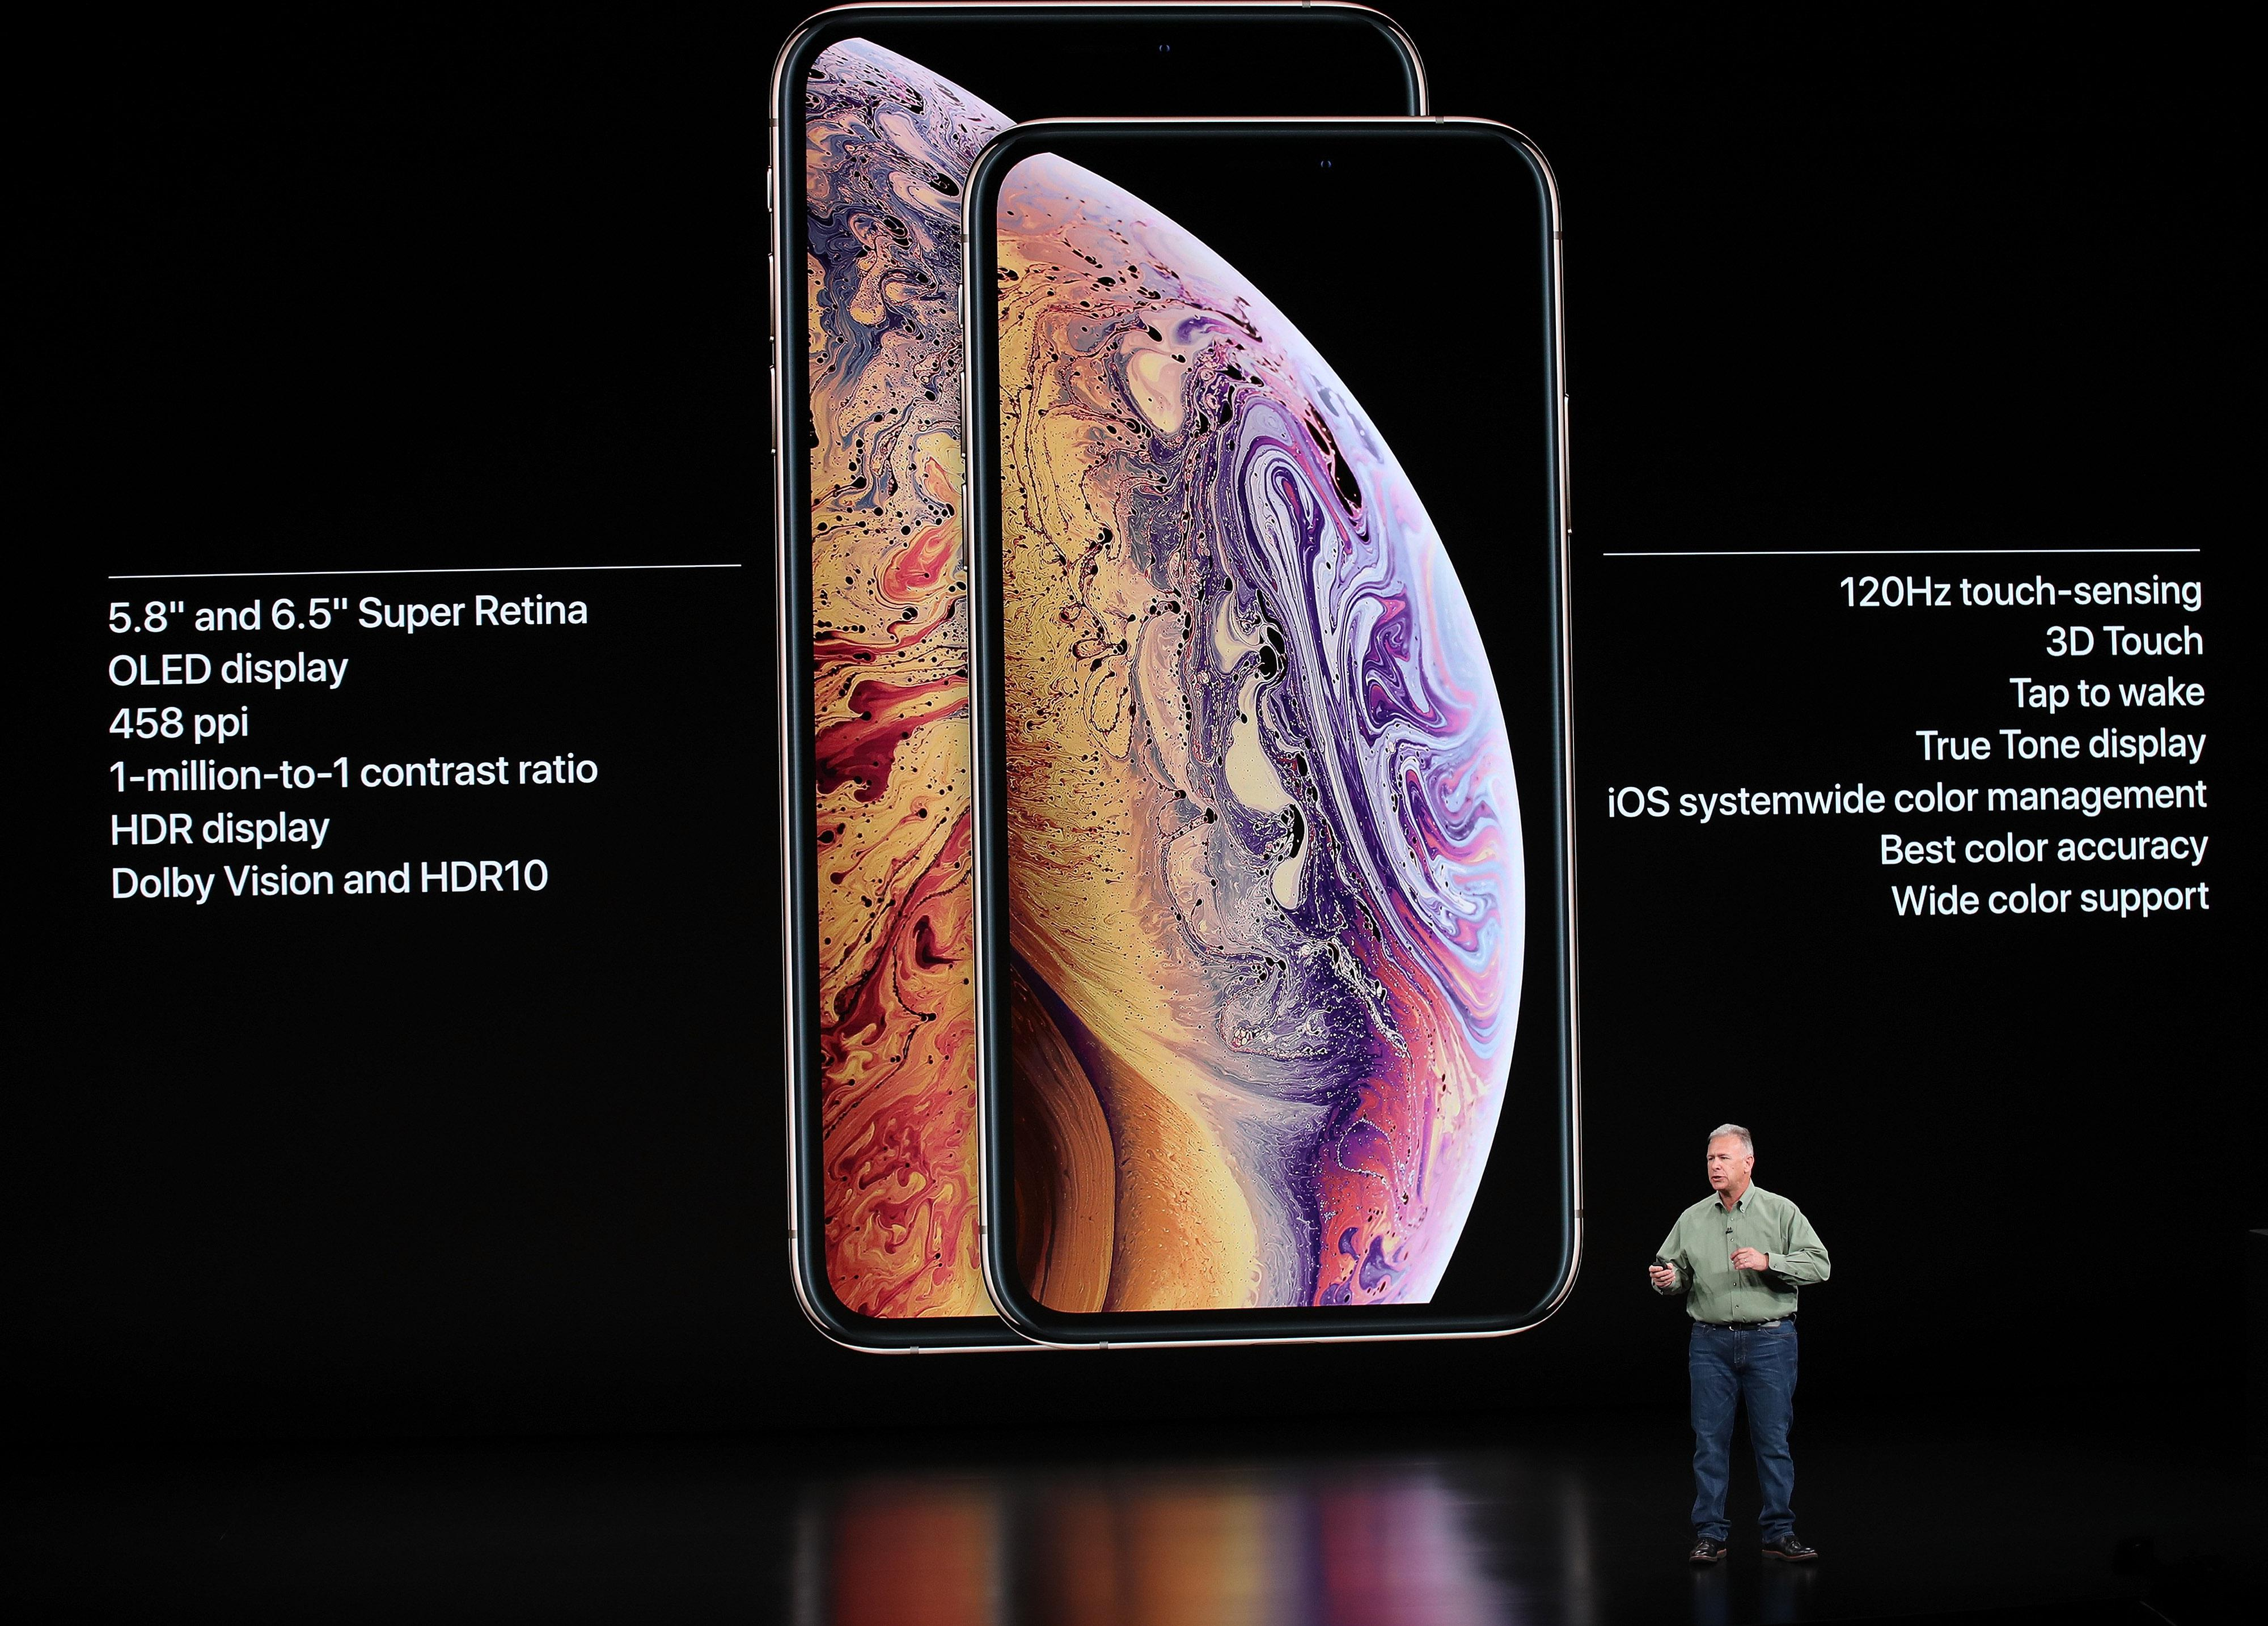 Phil Schiller, senior vice president of worldwide marketing at Apple Inc., introduces the new iPhone models.